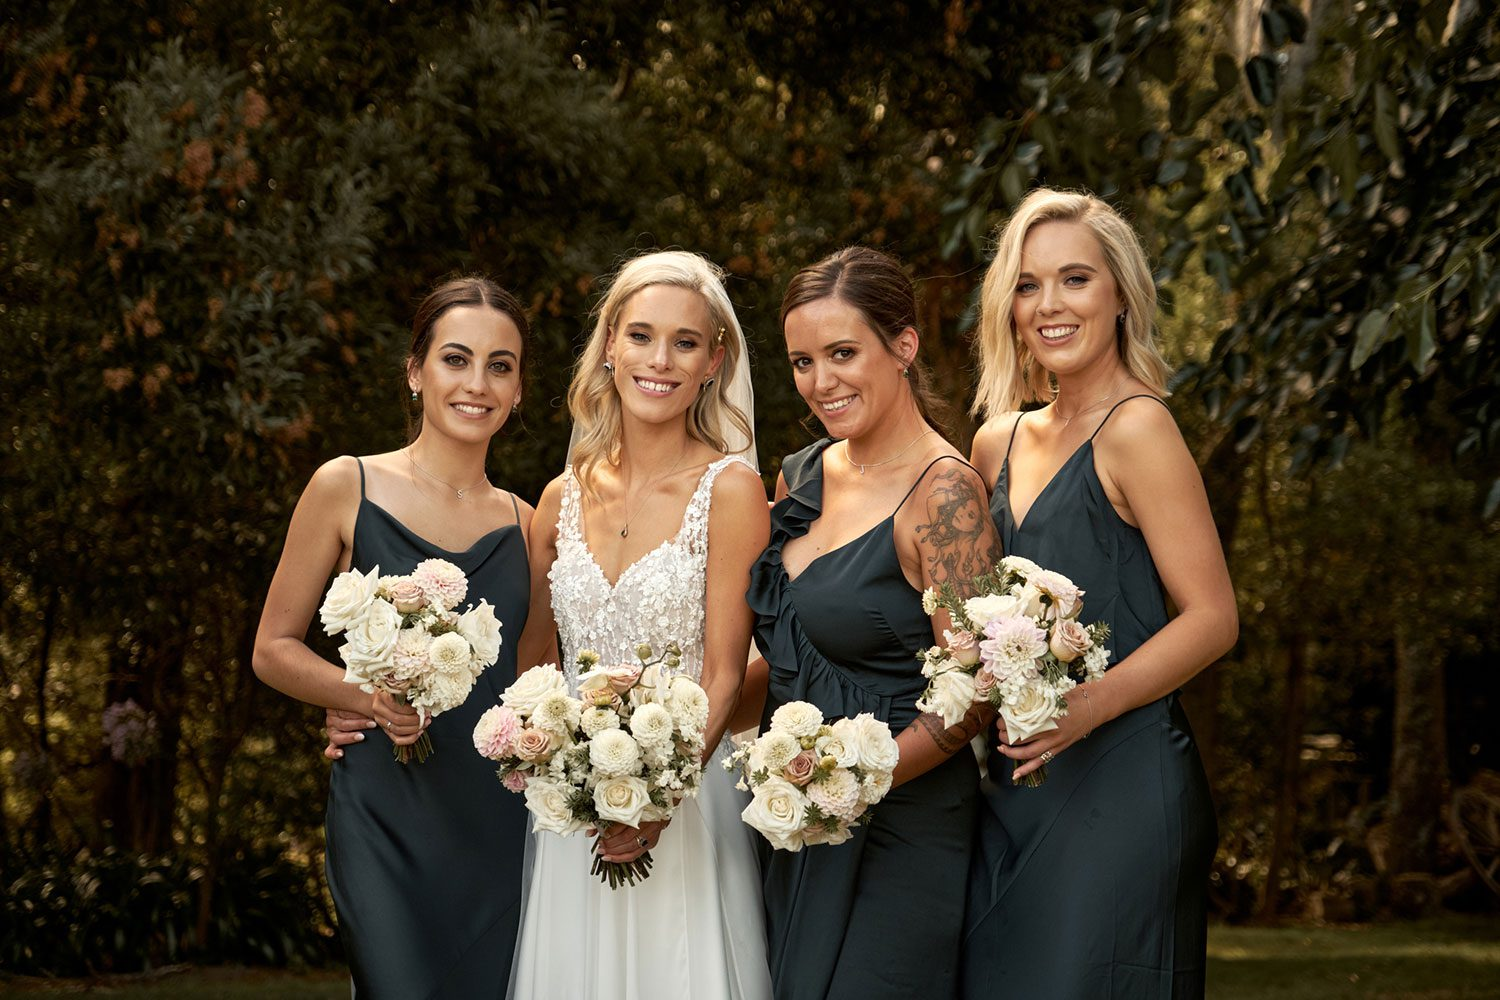 Bride wearing bespoke gown made of silk chiffon with delicate flower lace bodice by Vinka bridal designer Auckland - with bridesmaids and bouquets